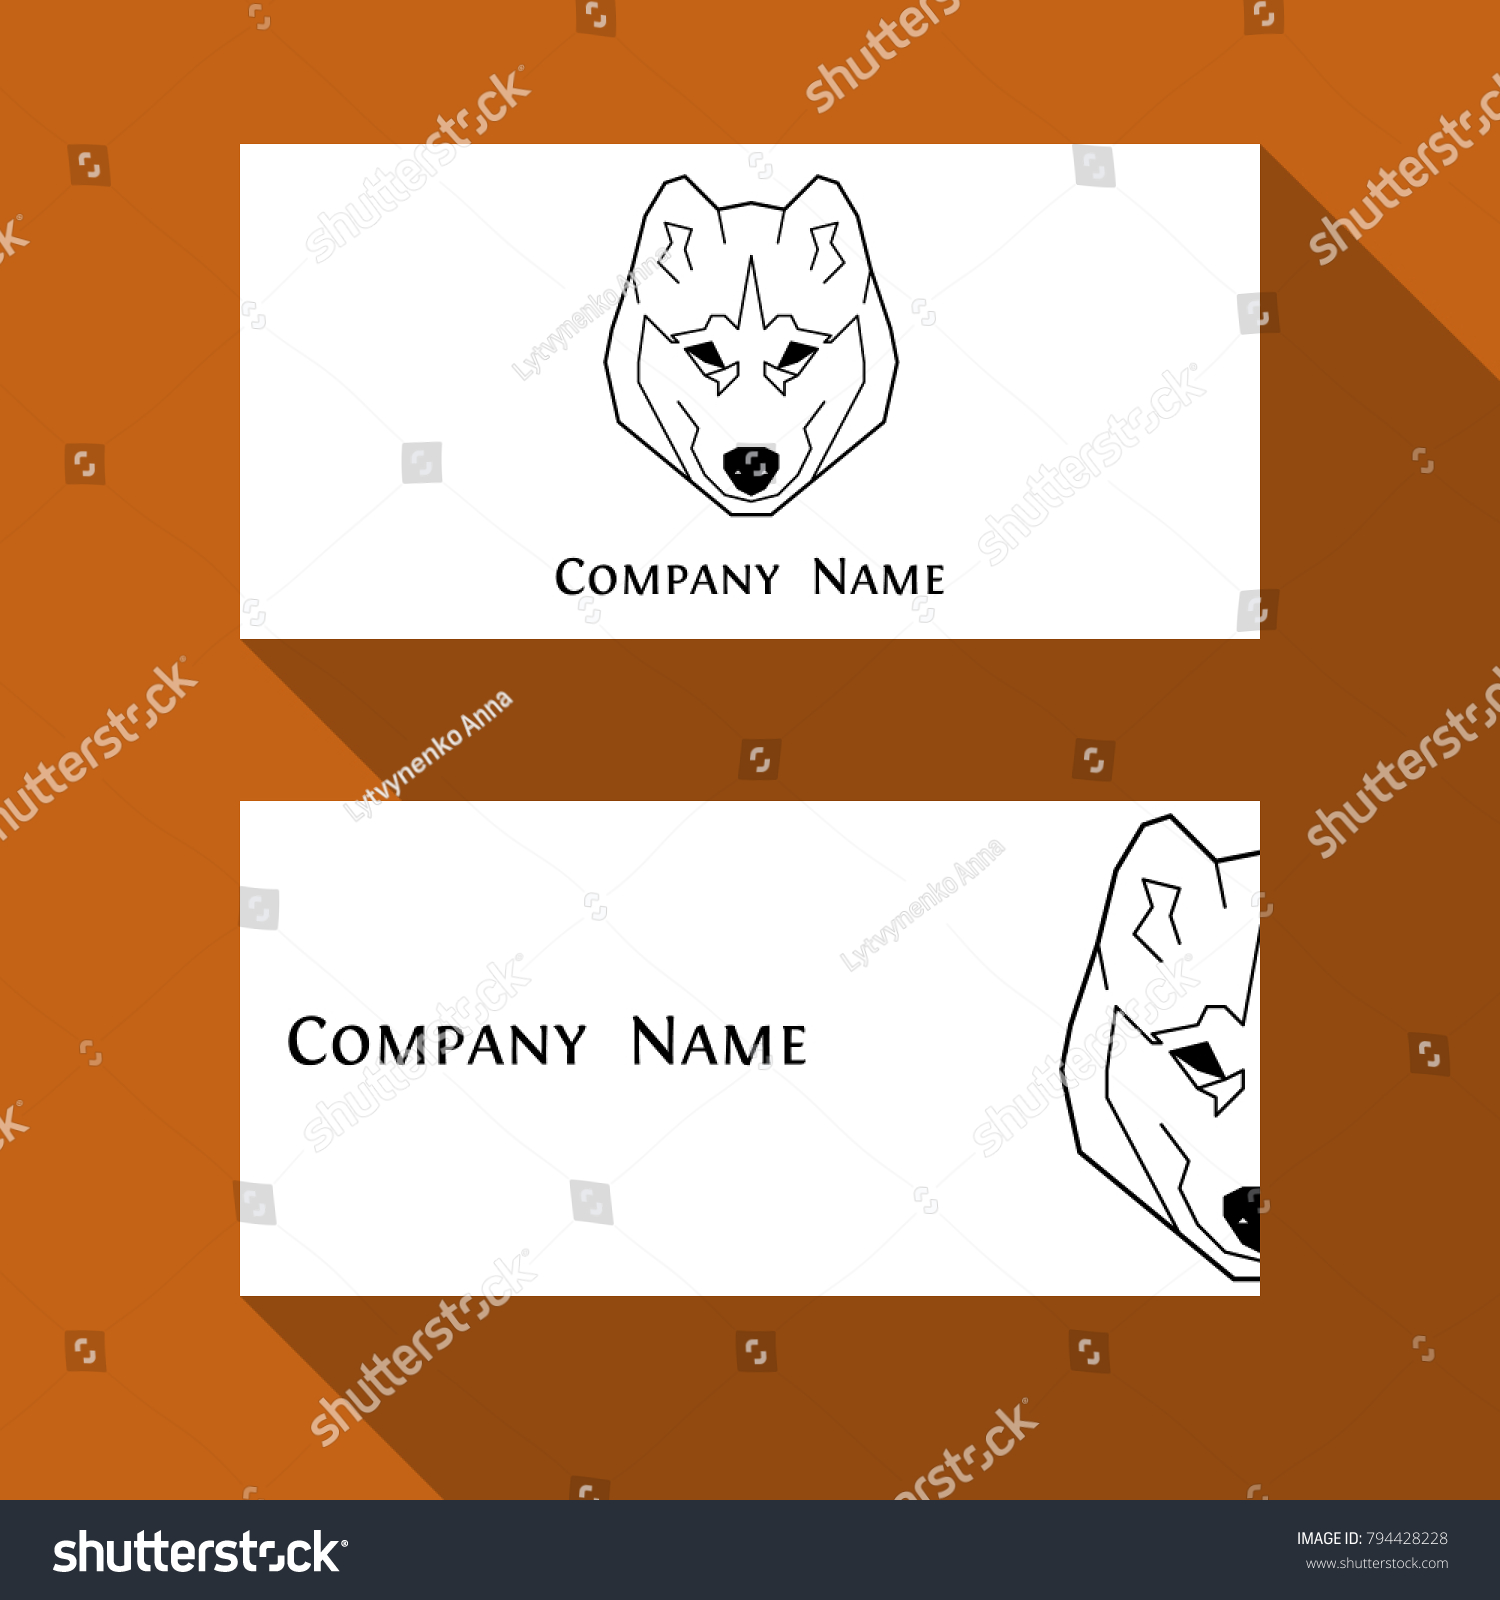 Husky Dog Business Card Geometric Modern Stock Vector HD (Royalty ...